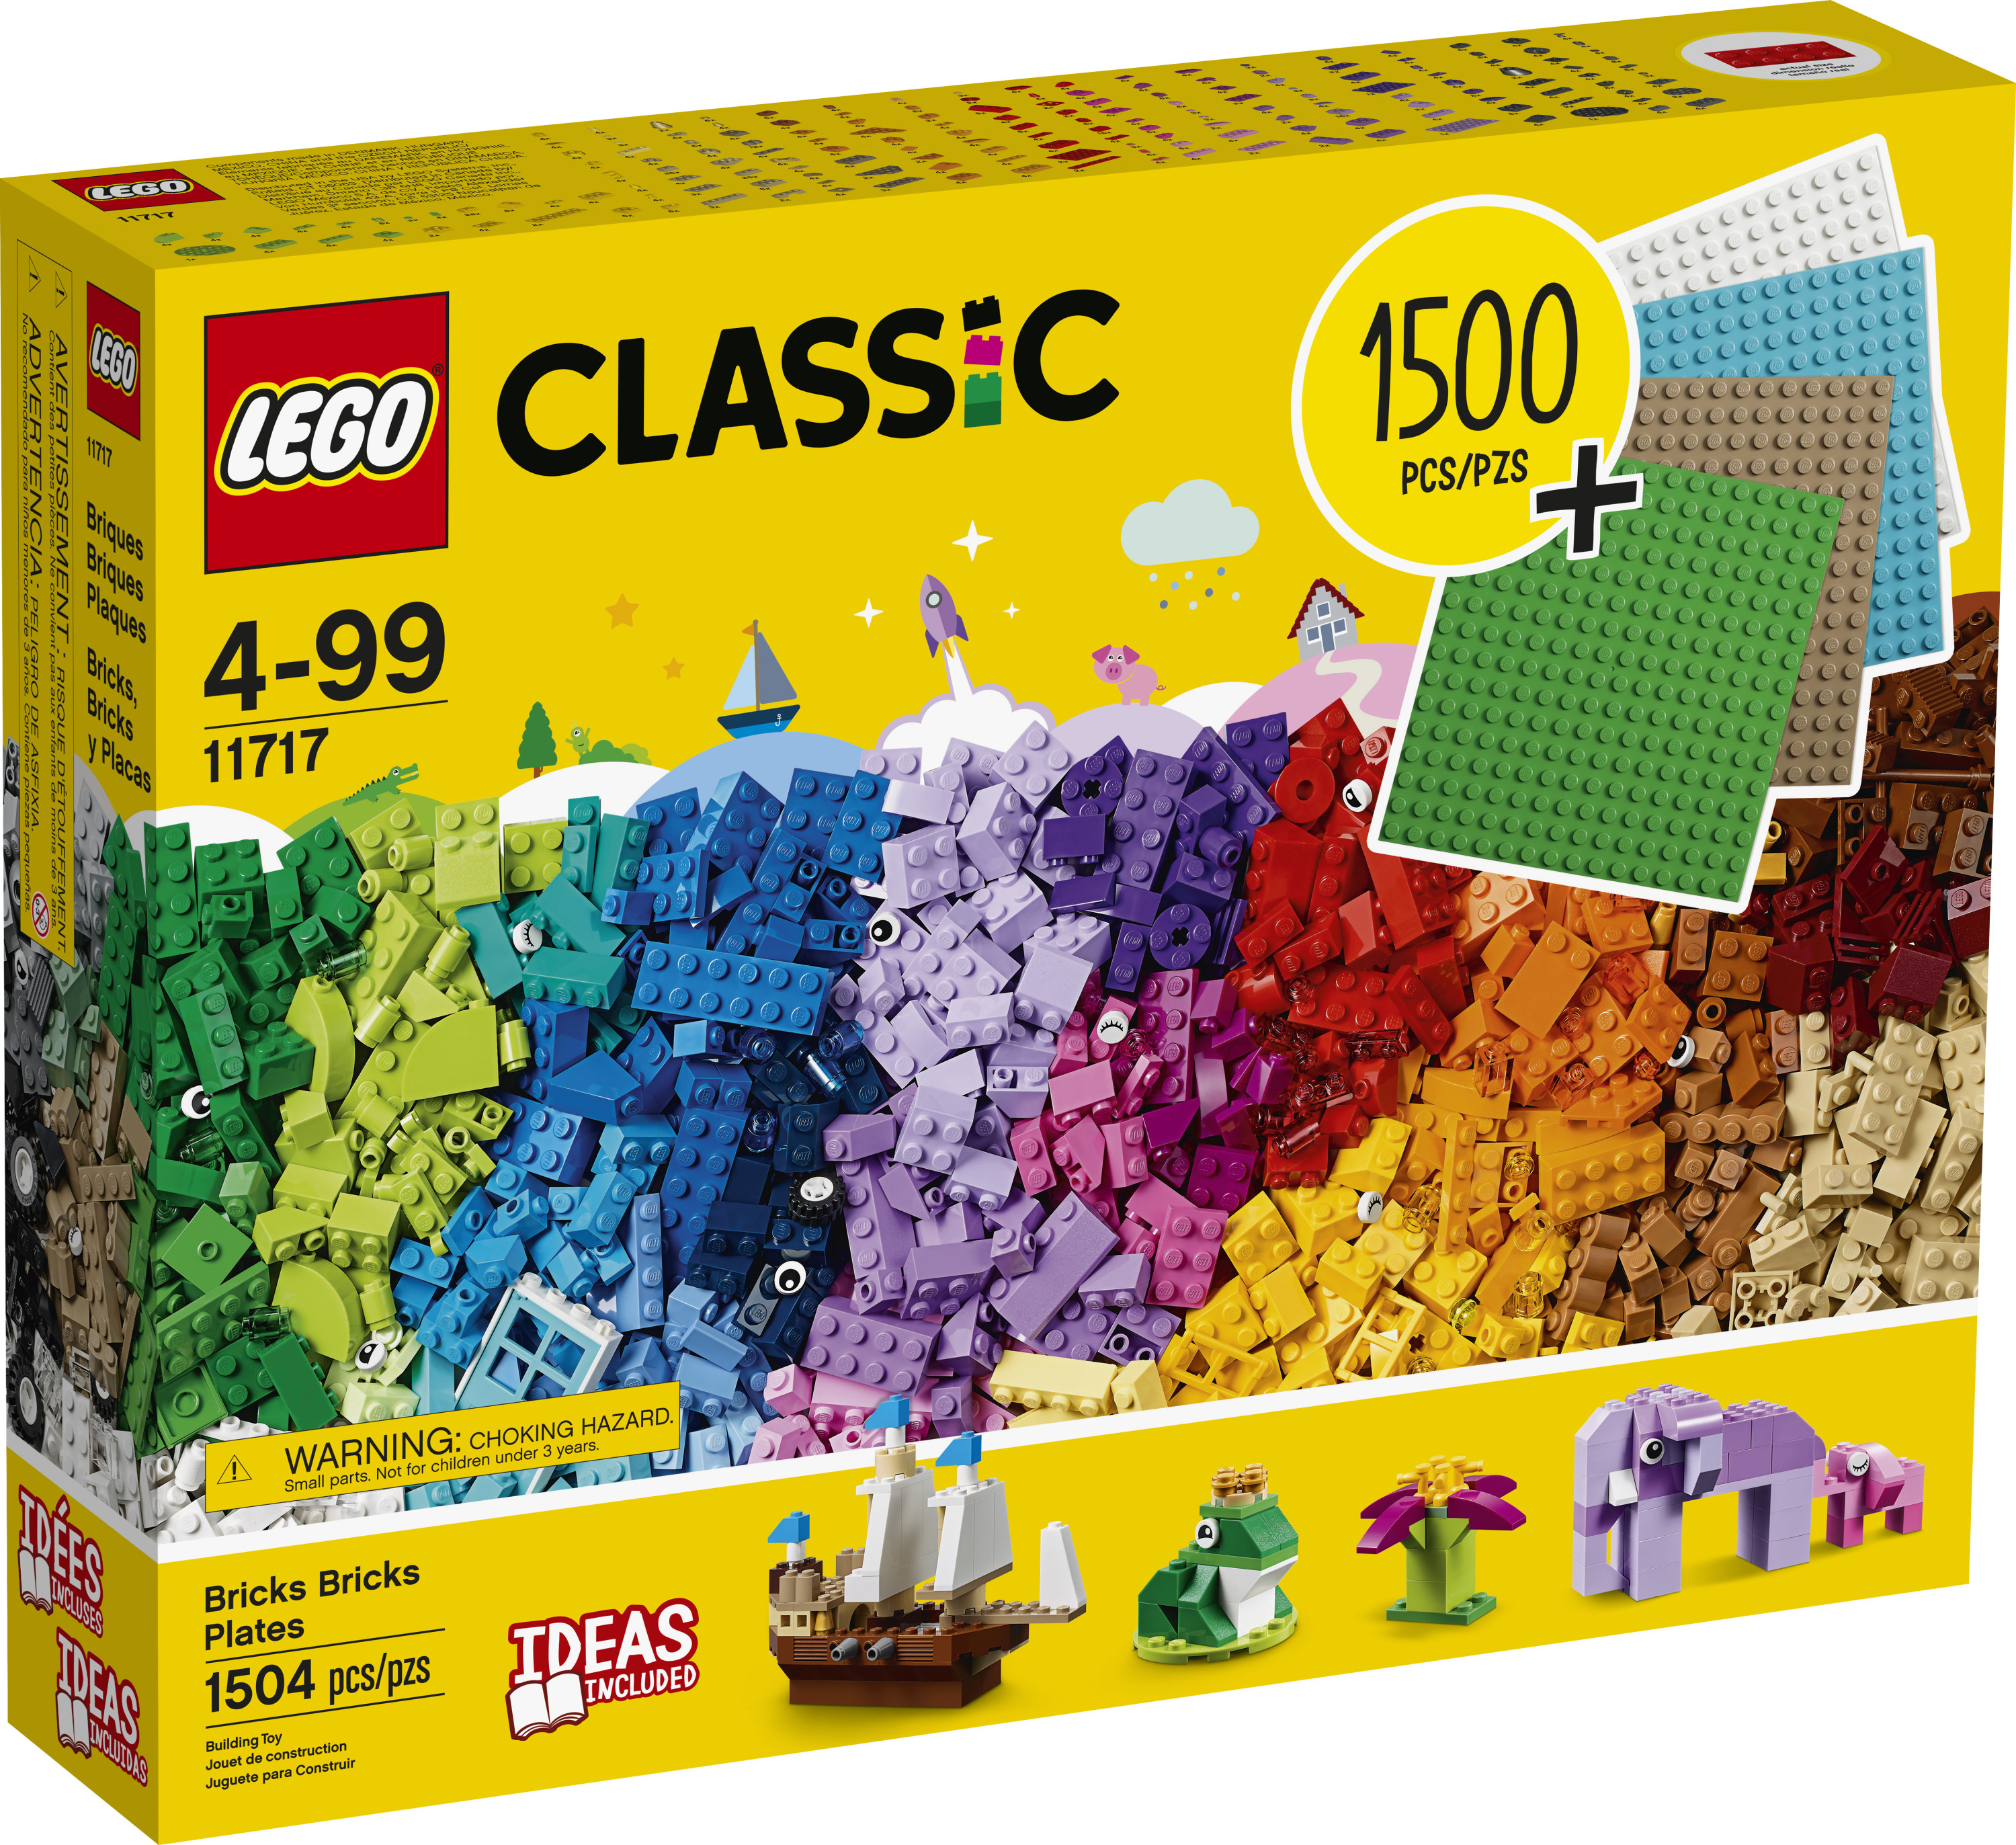 10717 FAST SHIPPING! LEGO Classic Bricks Bricks Bricks 1,500-piece Set